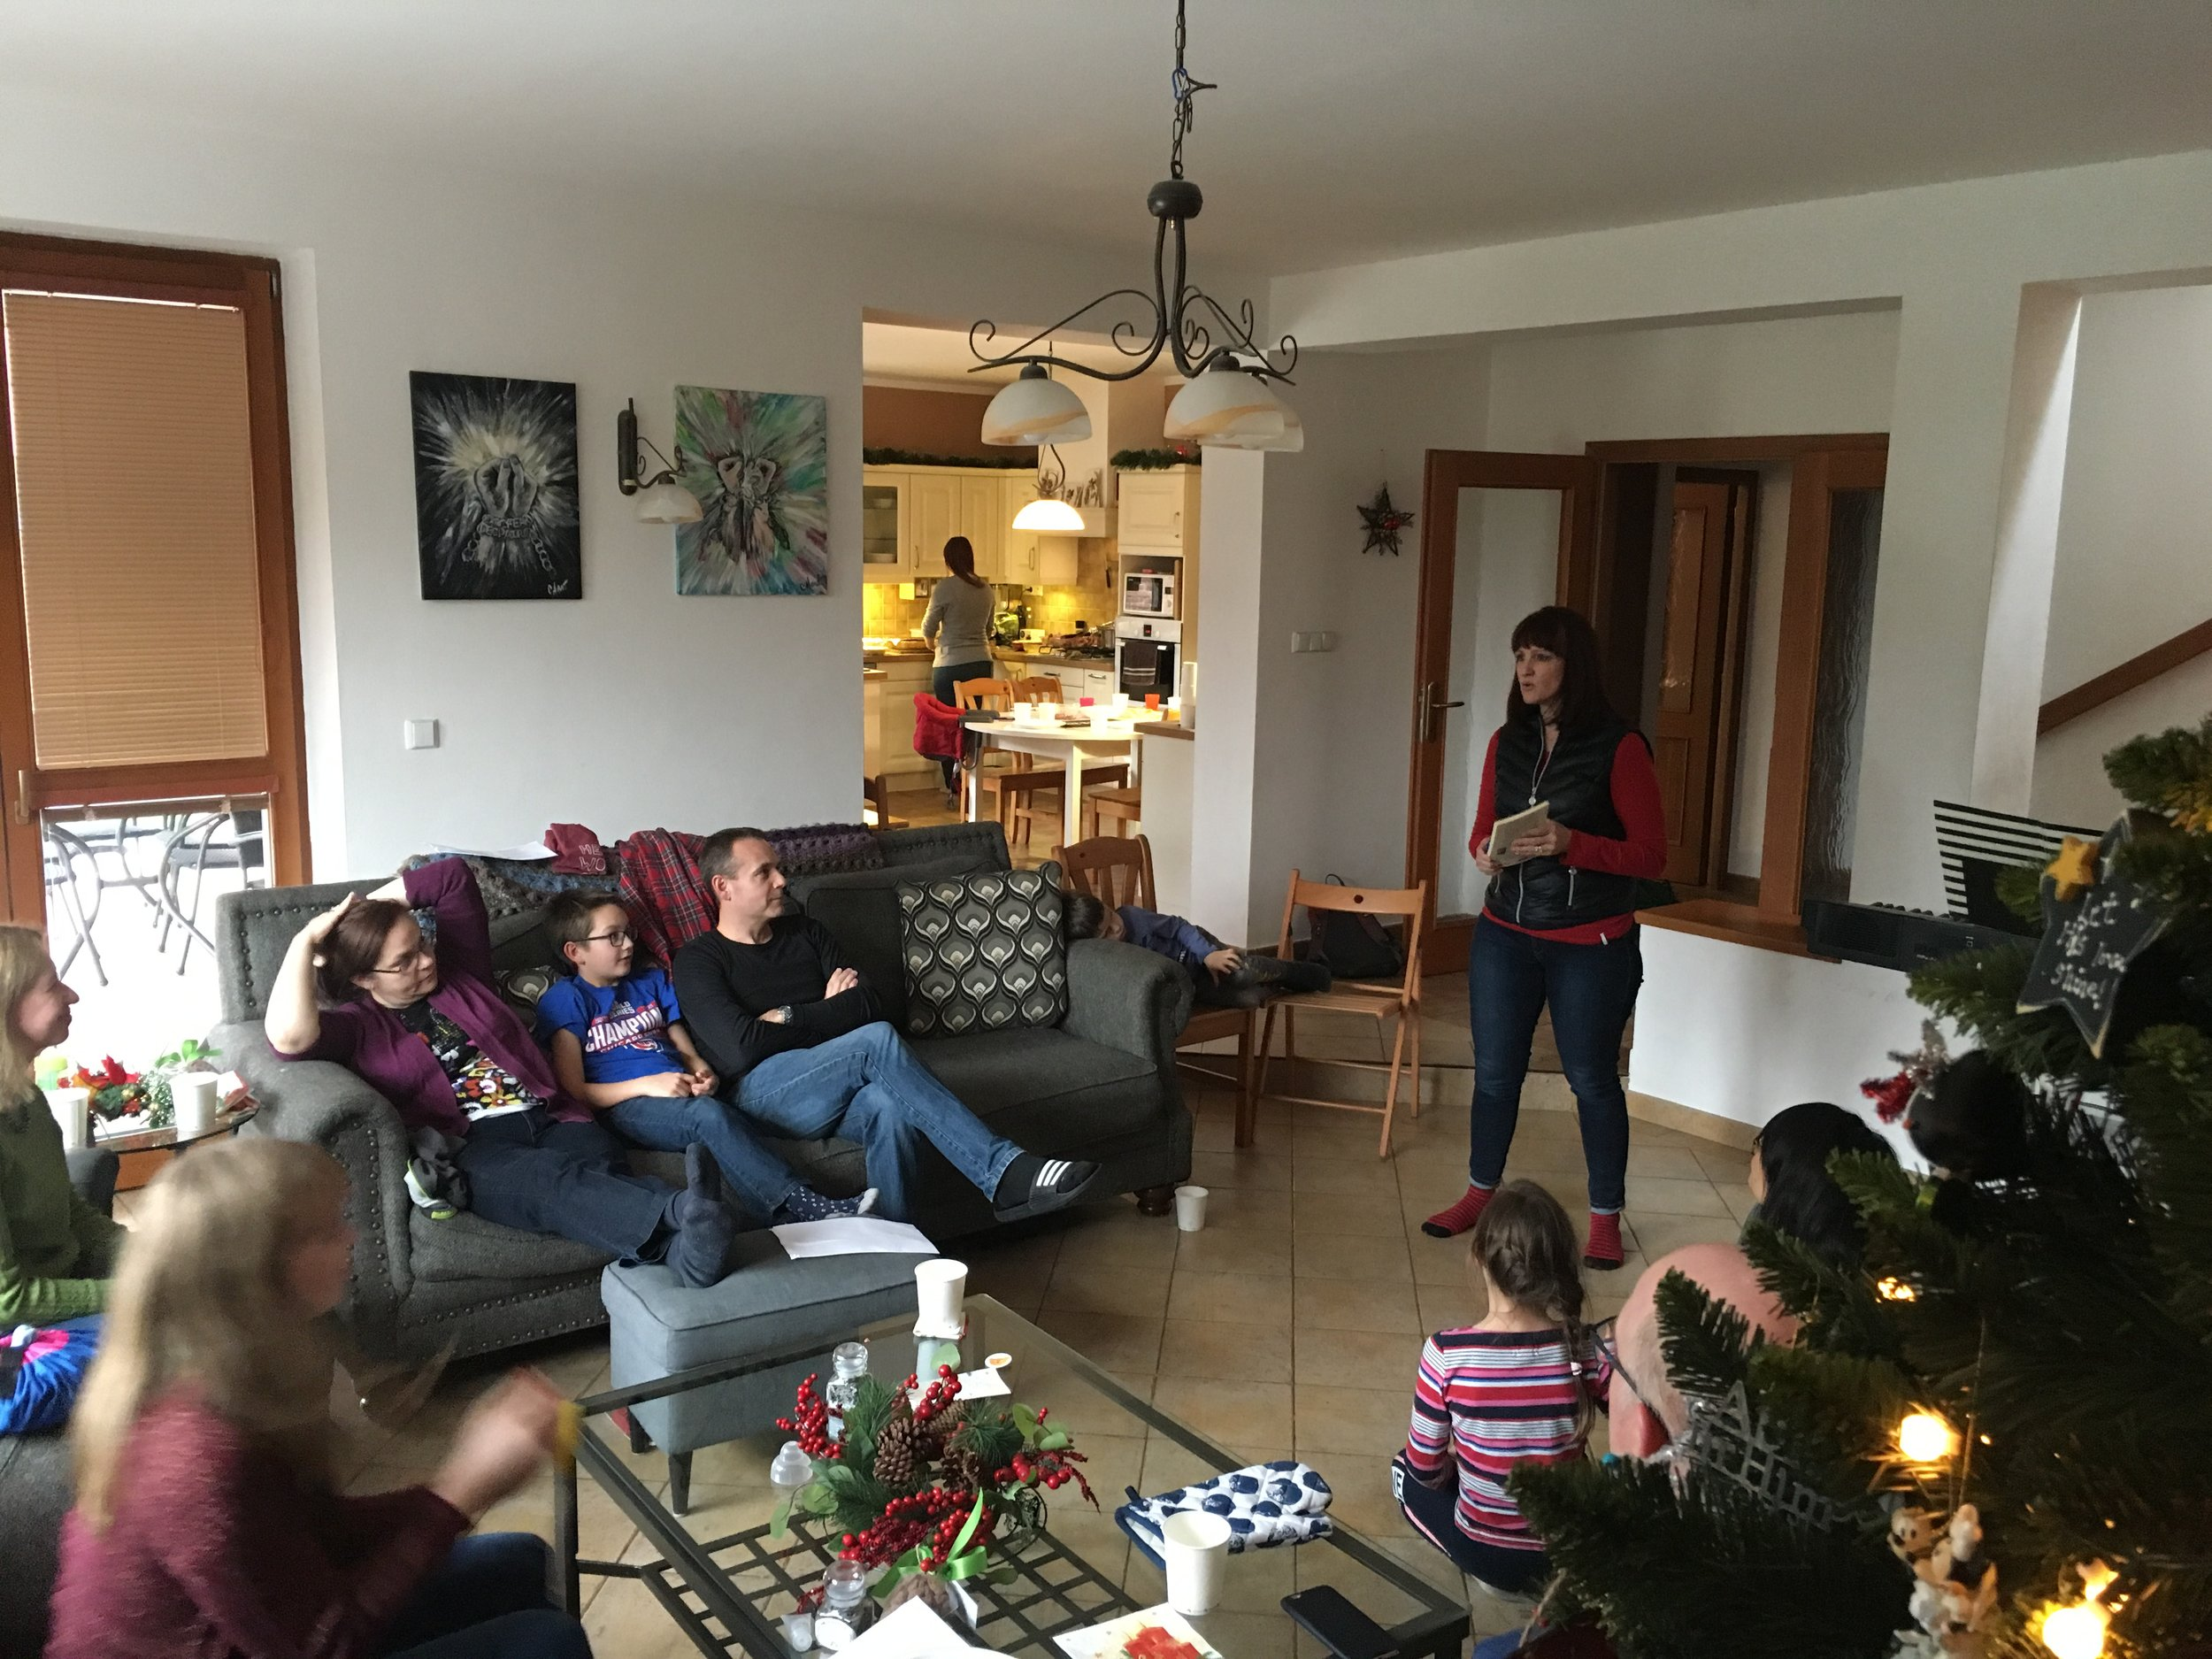 Our Pioneers team had our Thanksmas meeting at our place this year.